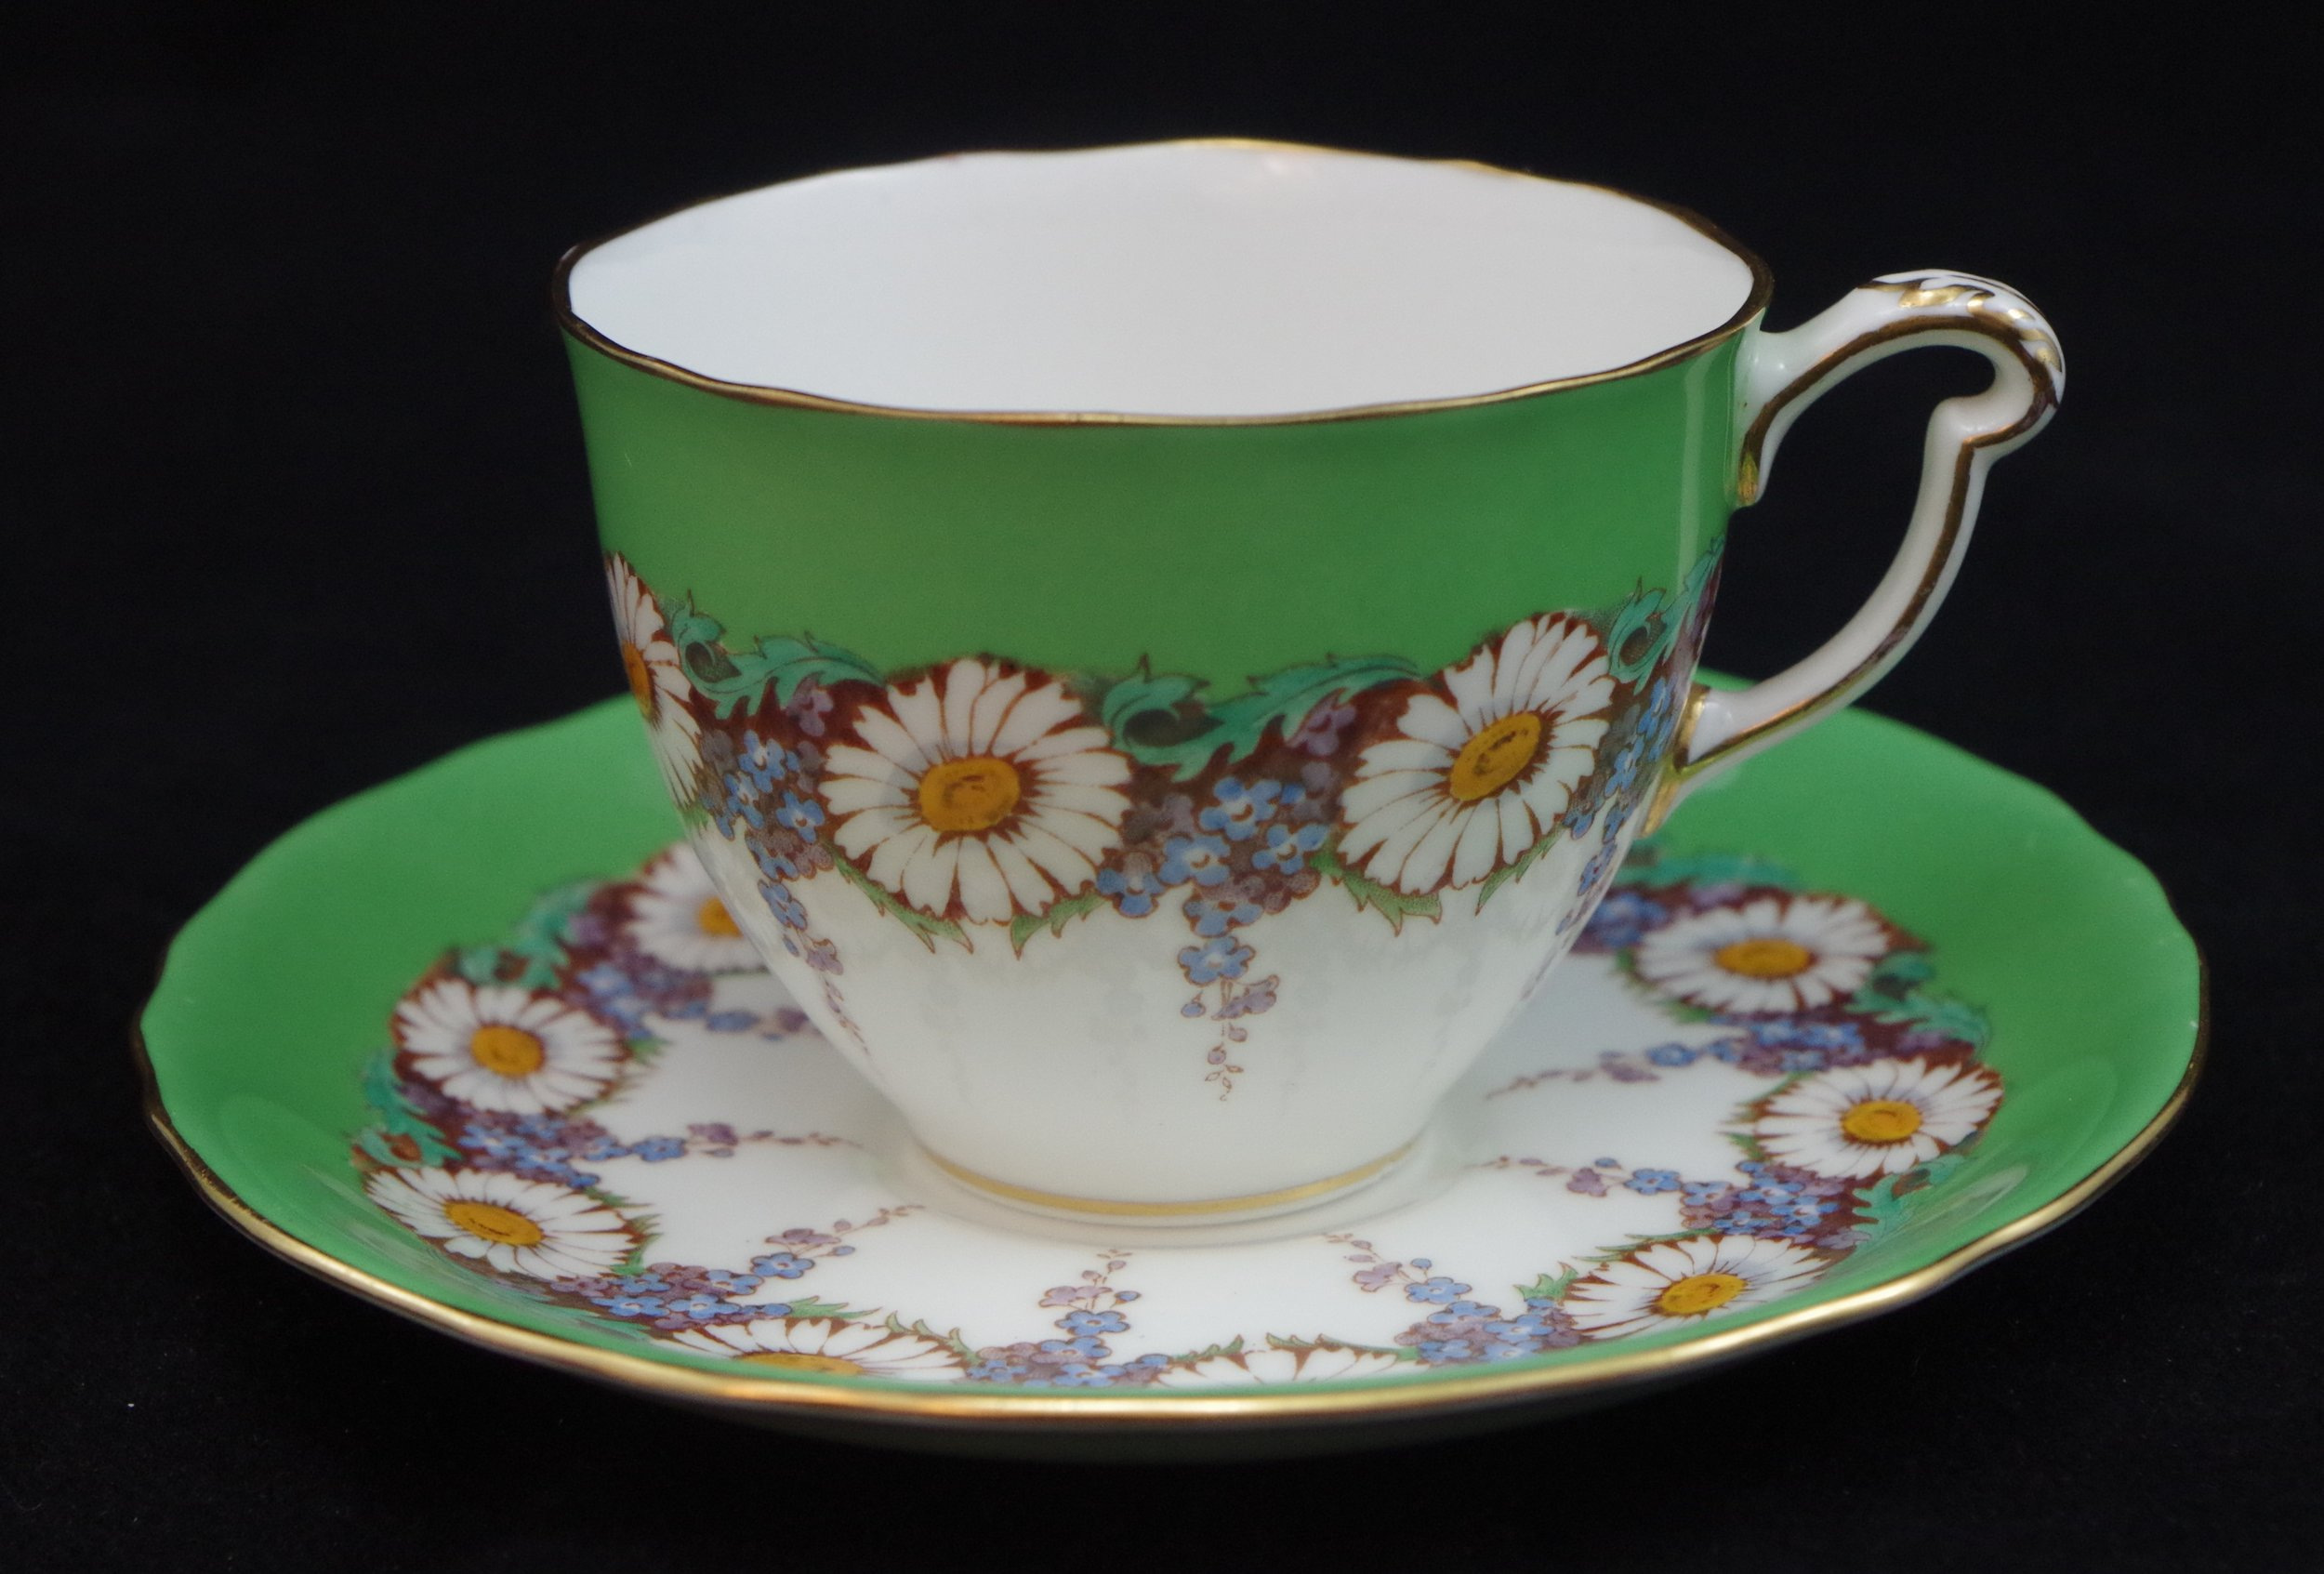 royal-crown-derby-ely-green-ground-white-daisies